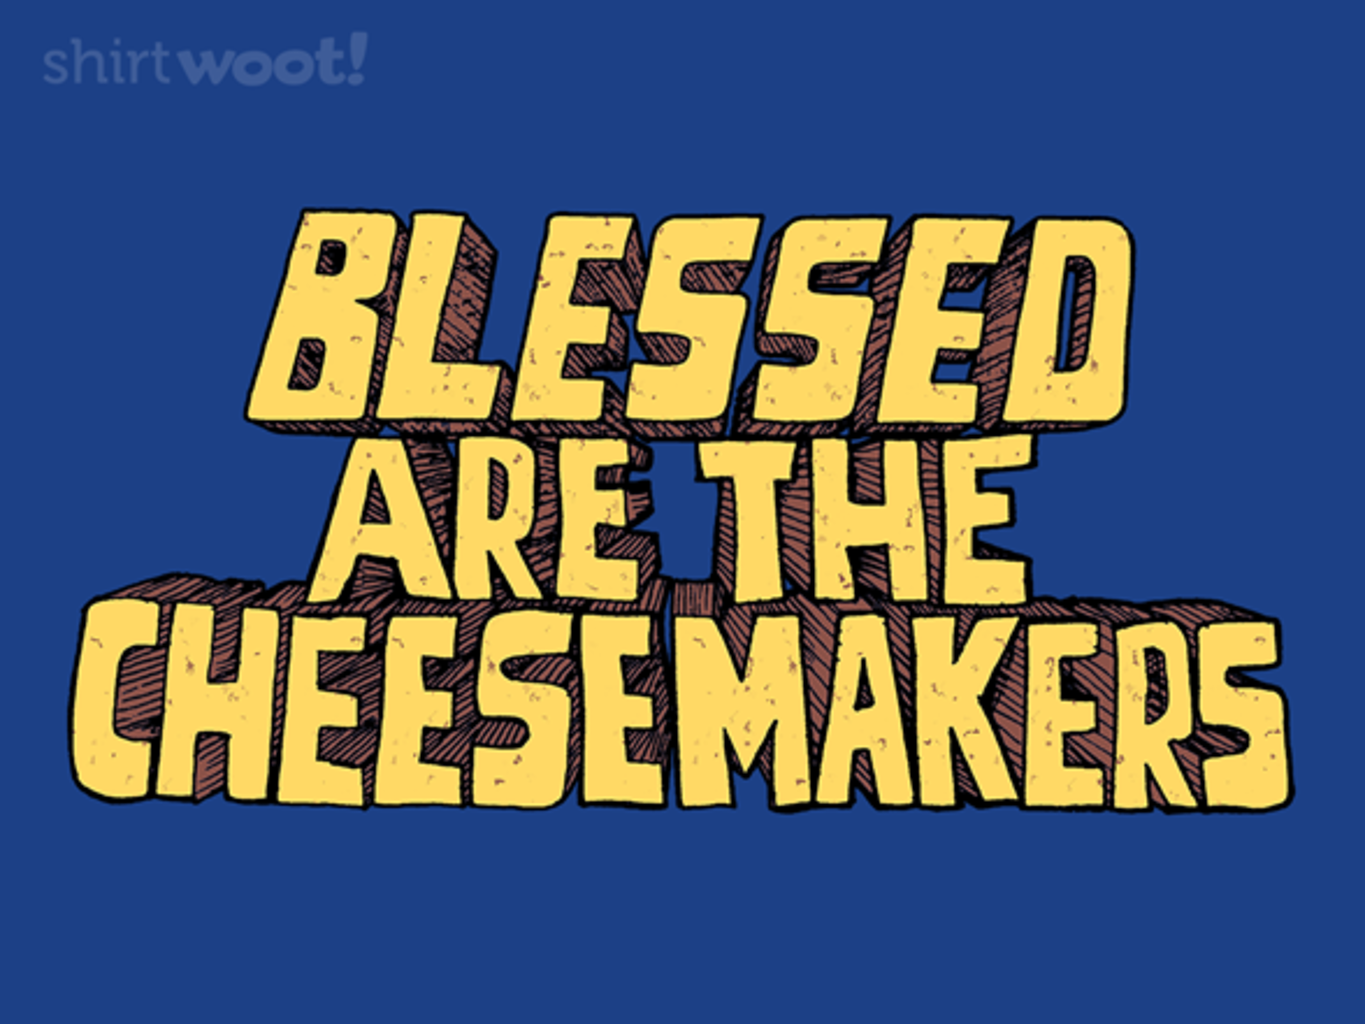 Woot!: Blessed Cheesemakers